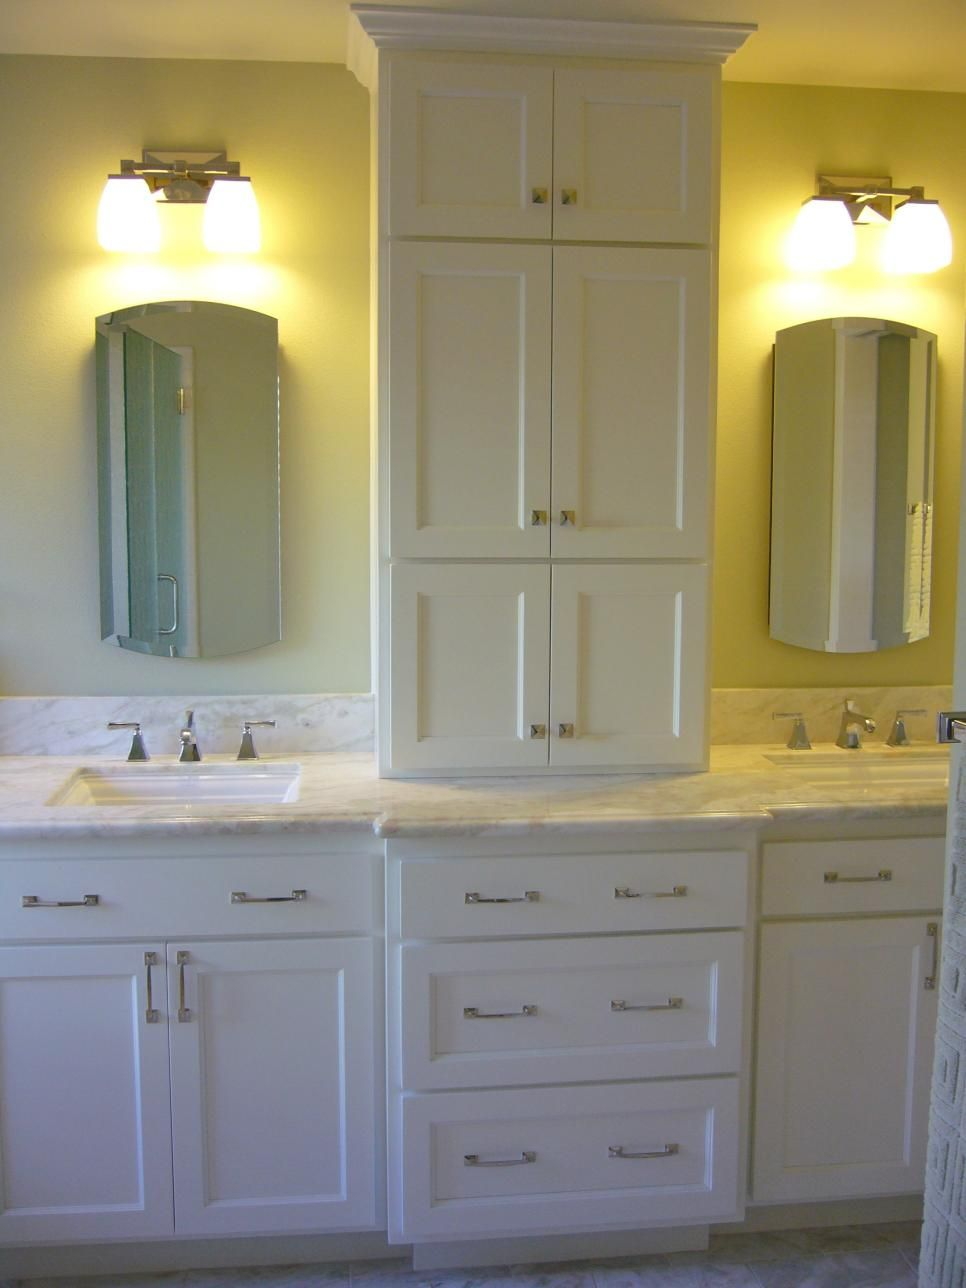 Pics Of A tall custom tower between the double sinks provides easily accessible storage for often